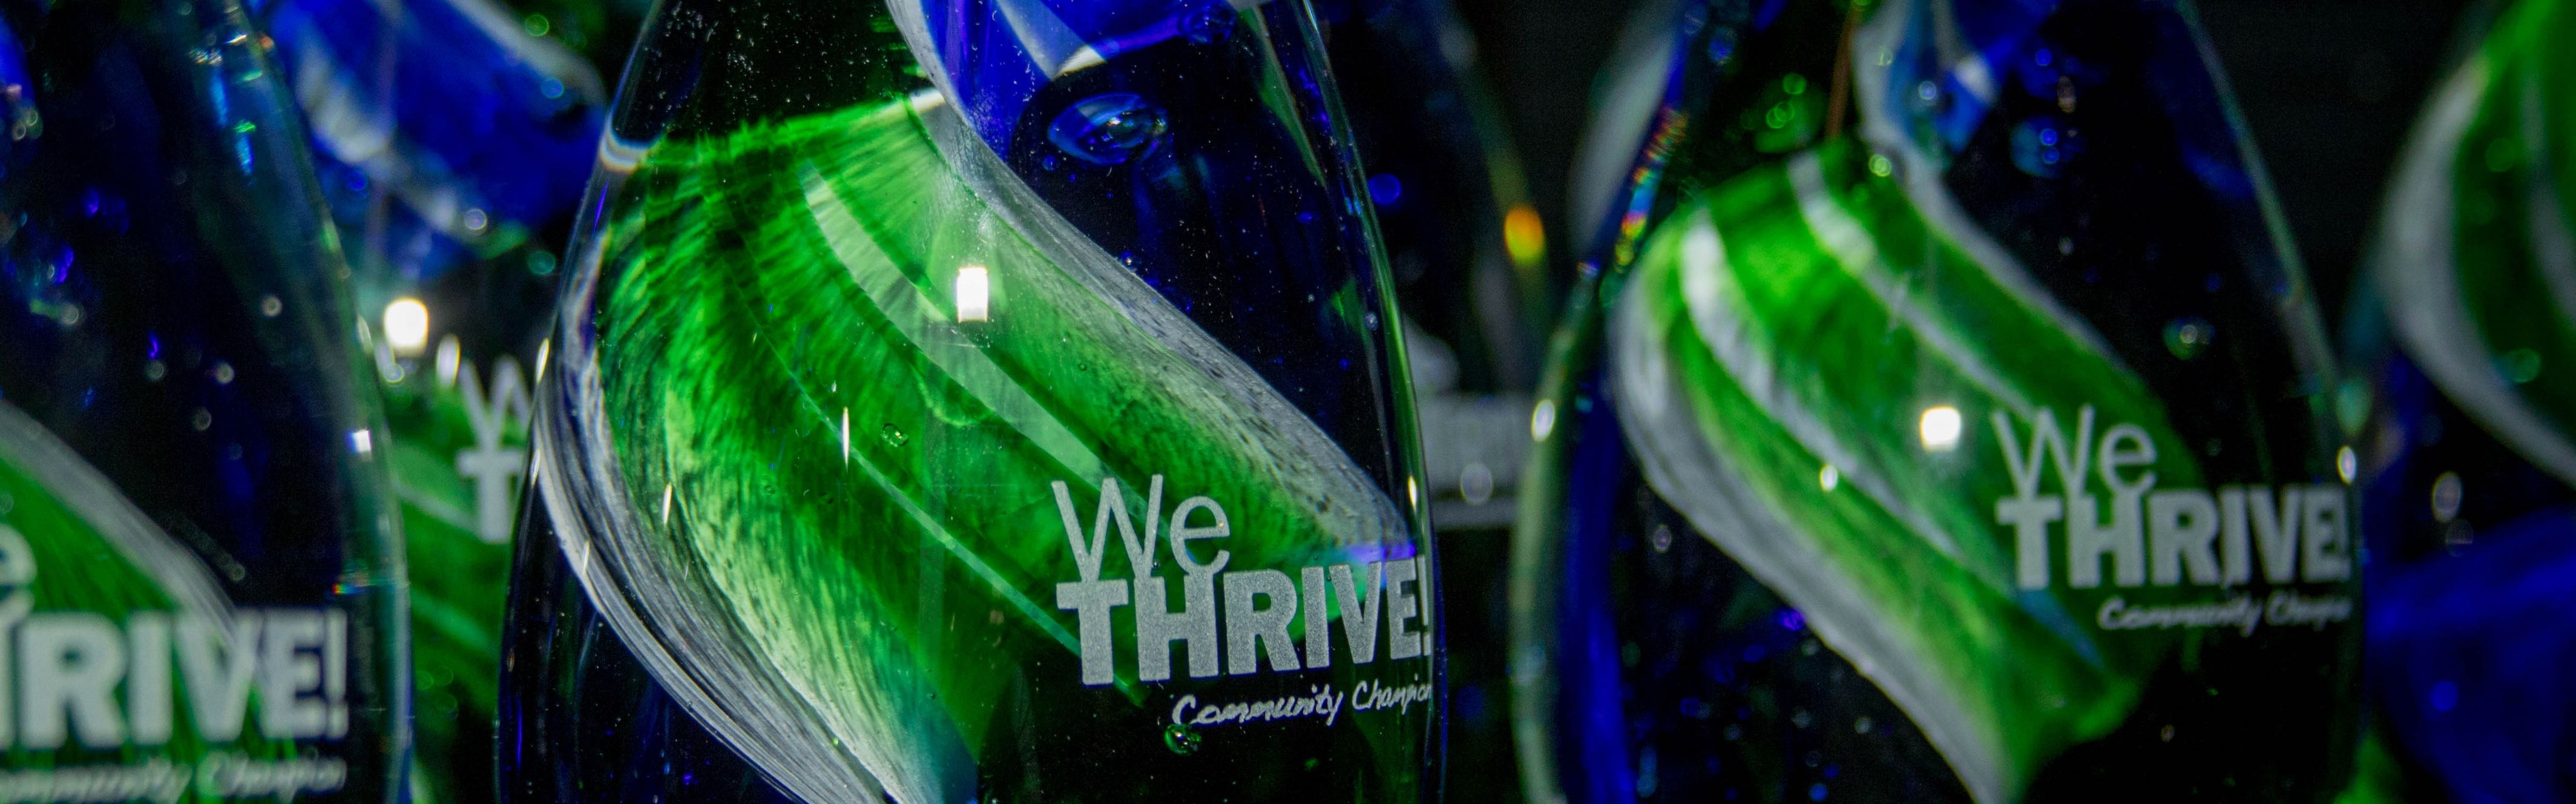 blue and green awards that say we thrive community champion